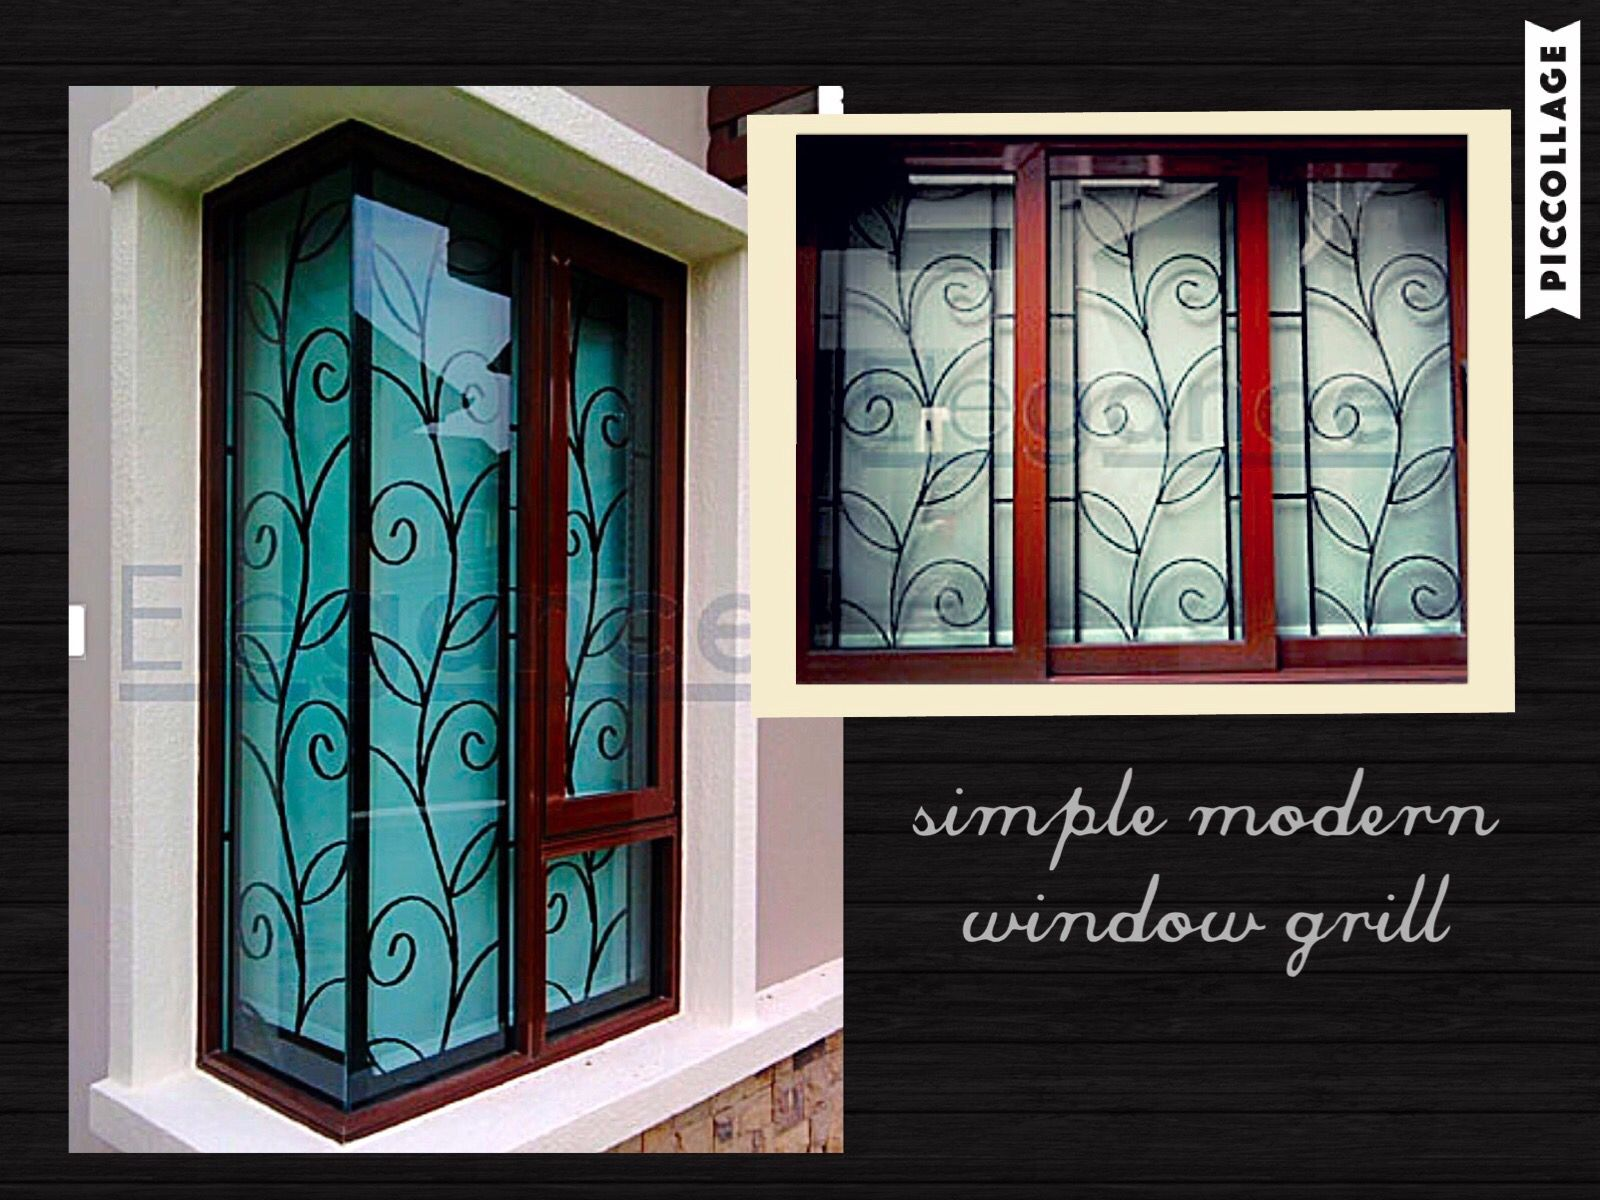 love the simple n modern design of this window grill